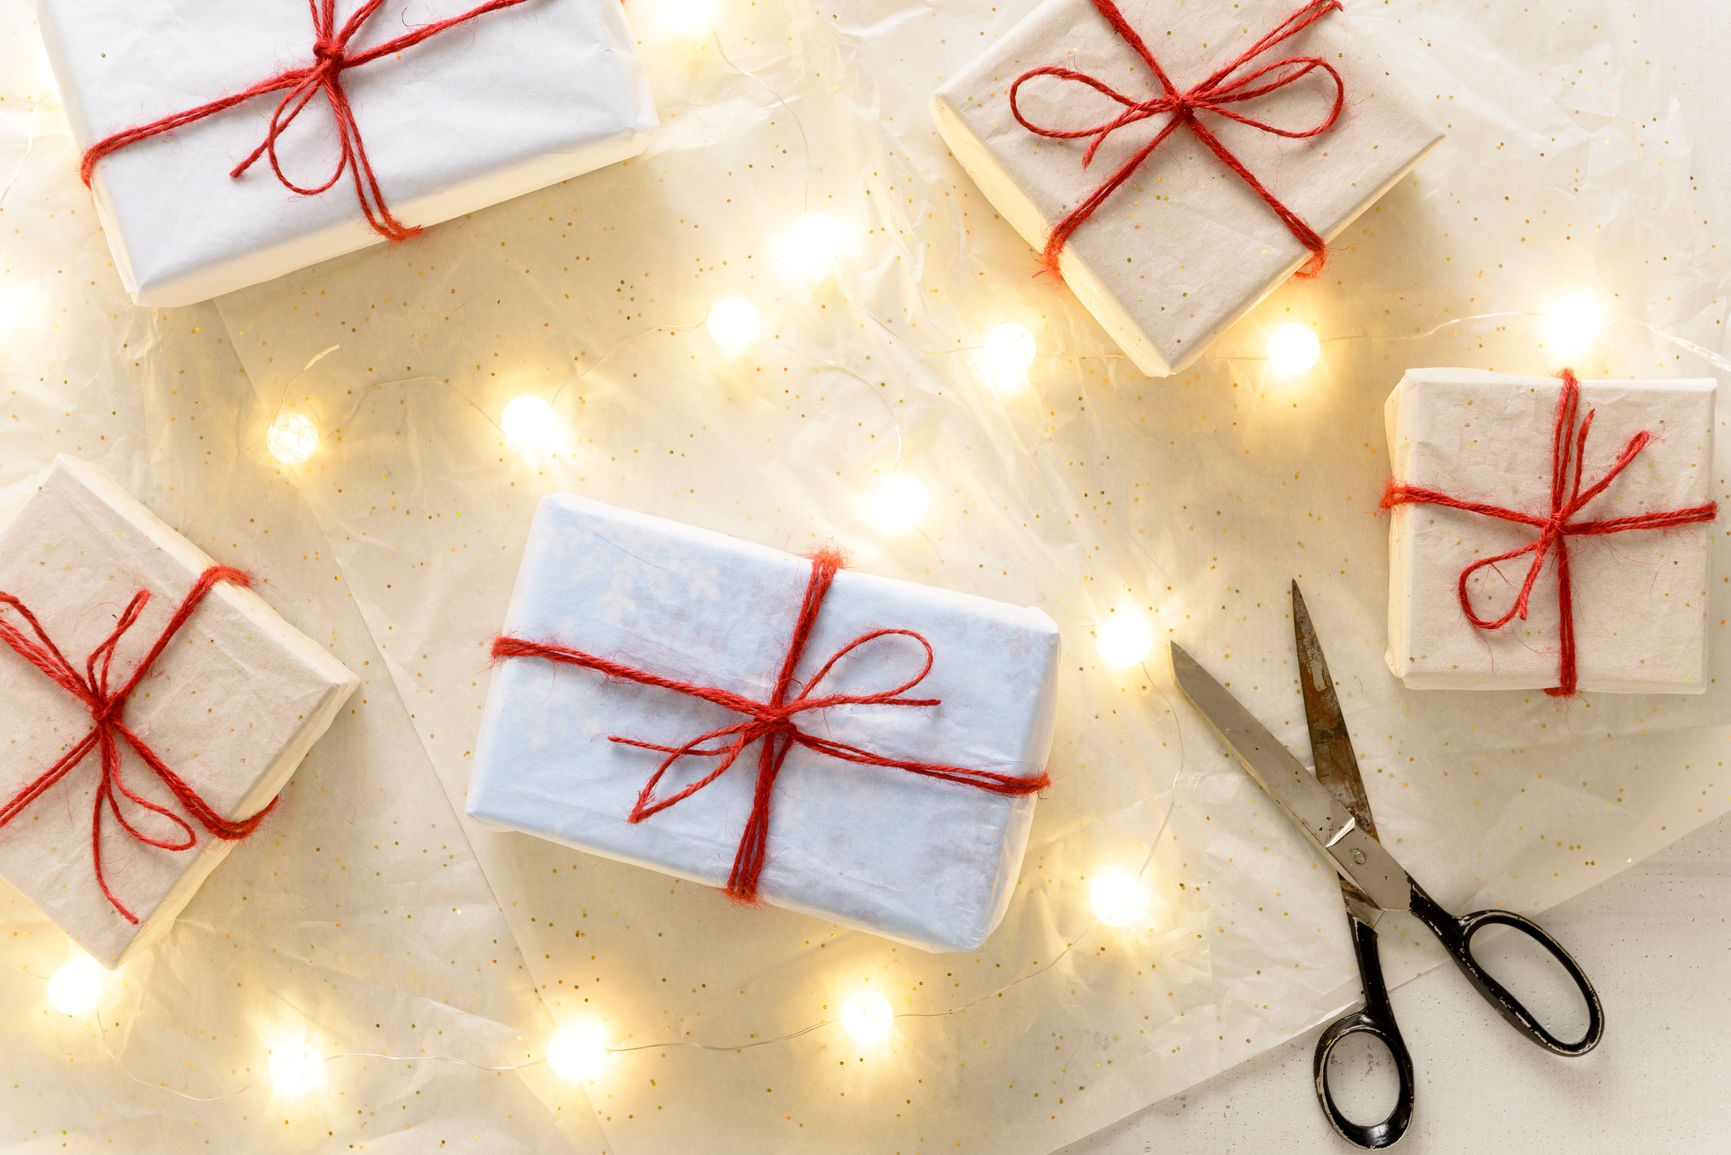 Clever 12 Days of Christmas Gifts